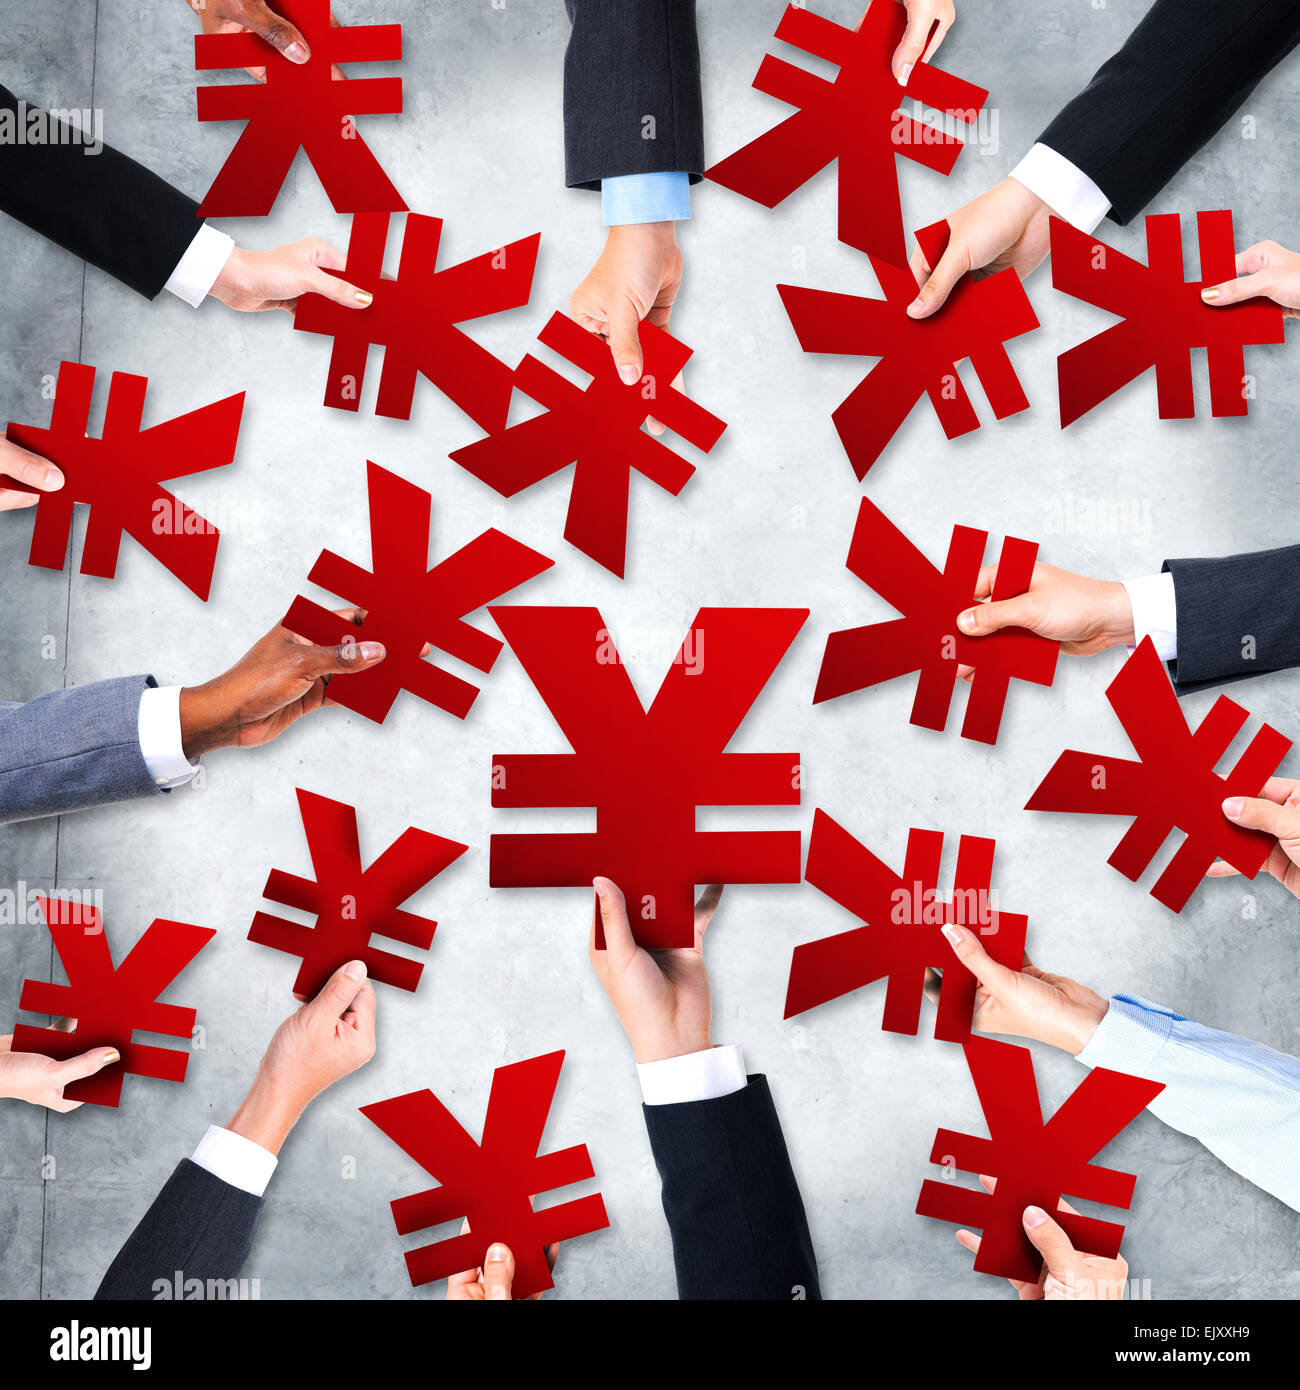 Group of Business People's Hands Holding Yen Symbols - Stock Image